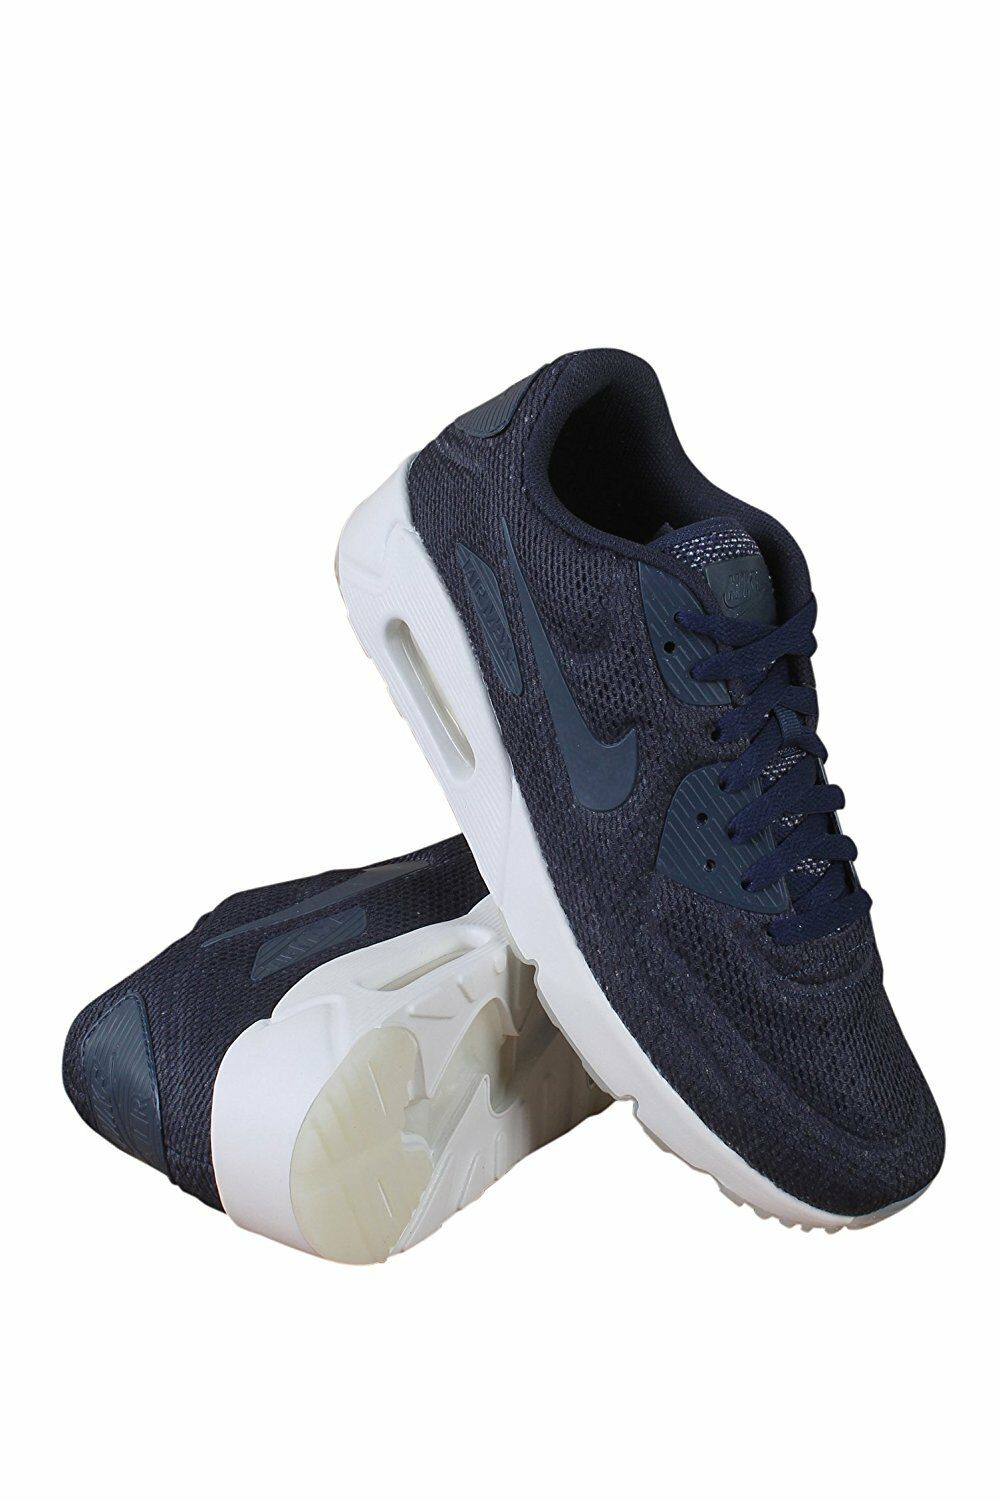 Nike Air Max 90 Ultra 2.0 Midnight Navy Midnight Navy (898010 400)